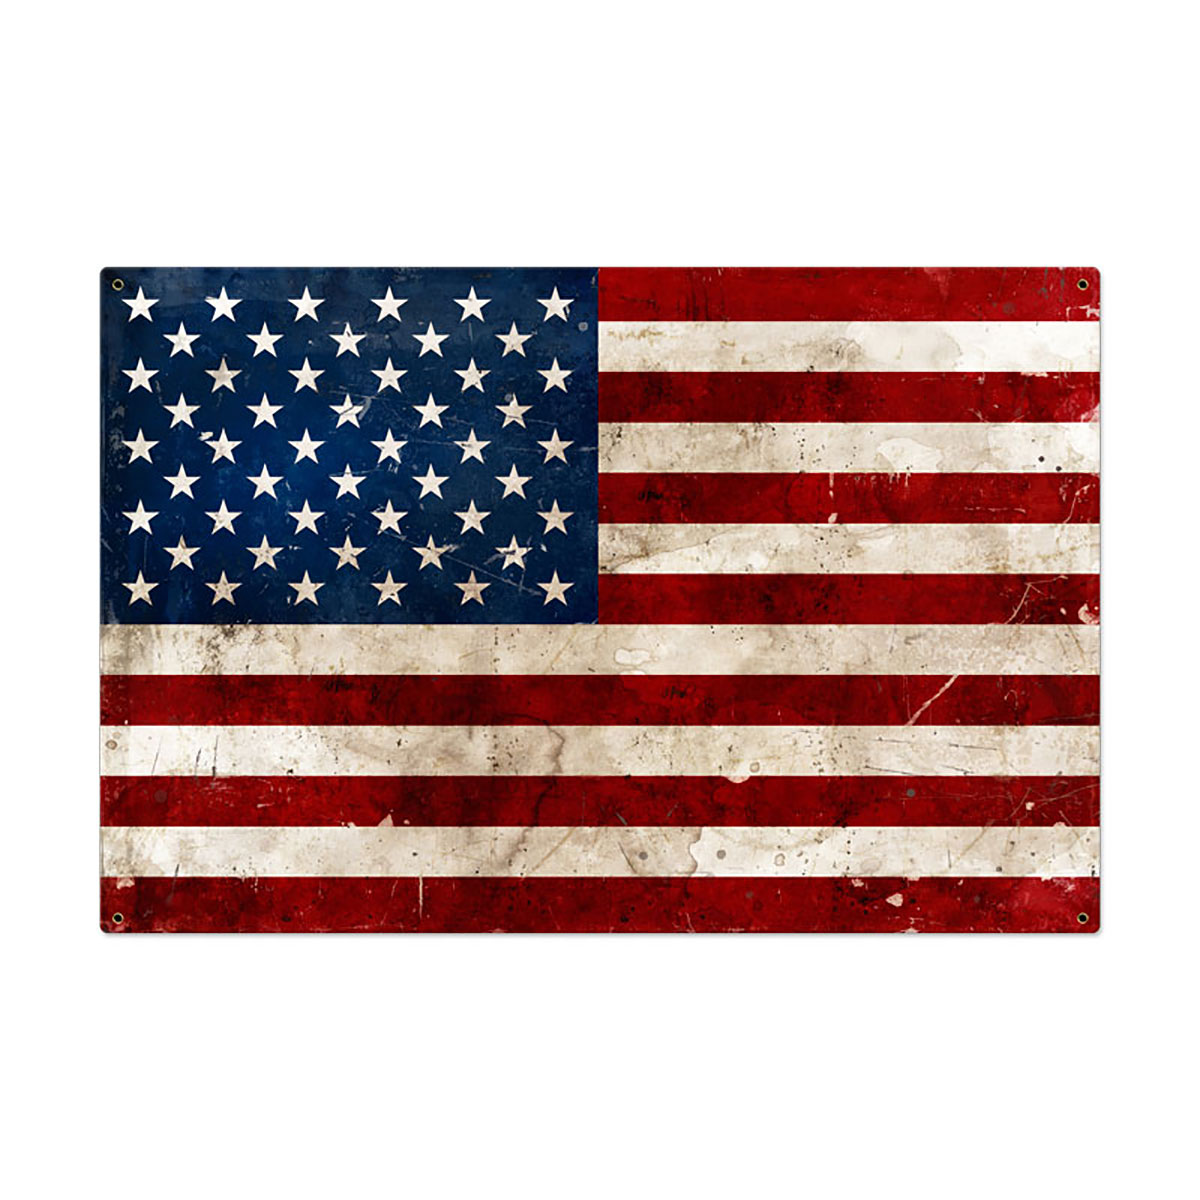 30ca21787f3d US American Flag Old Time Distressed Sign Large 36 x 24 at Retro Planet